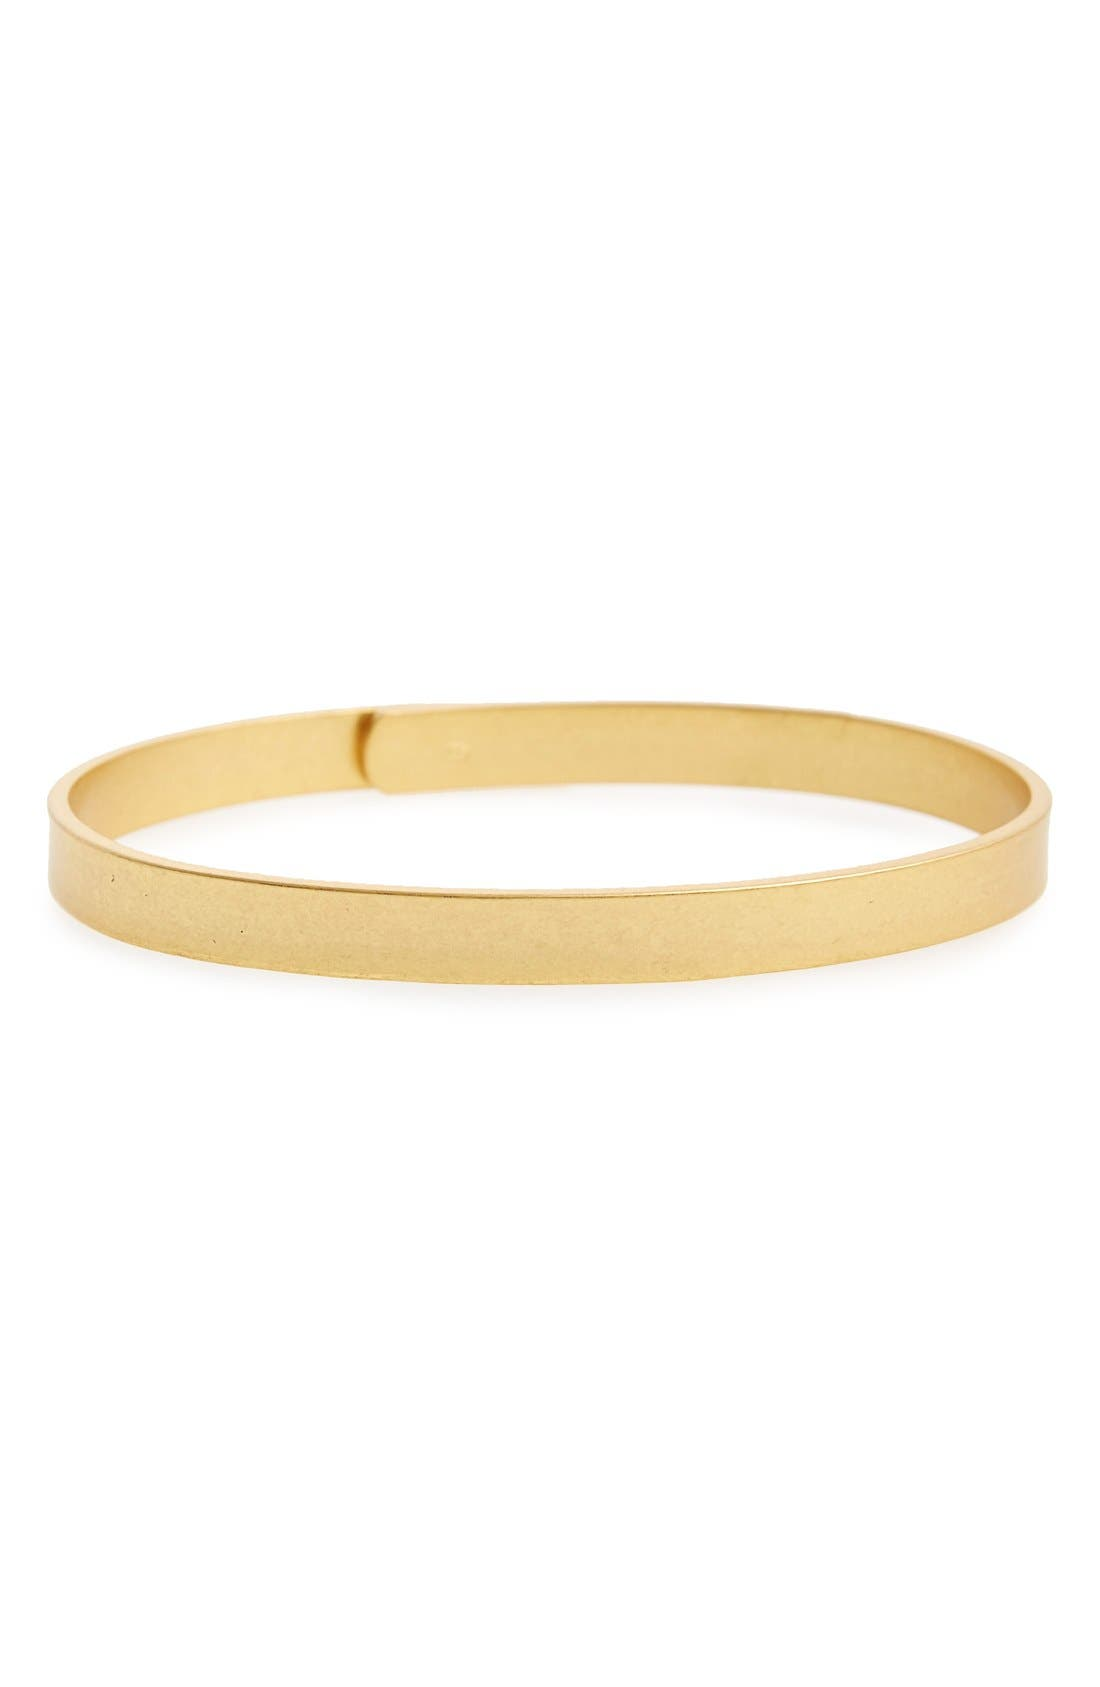 Main Image - Madewell Glider Bangle